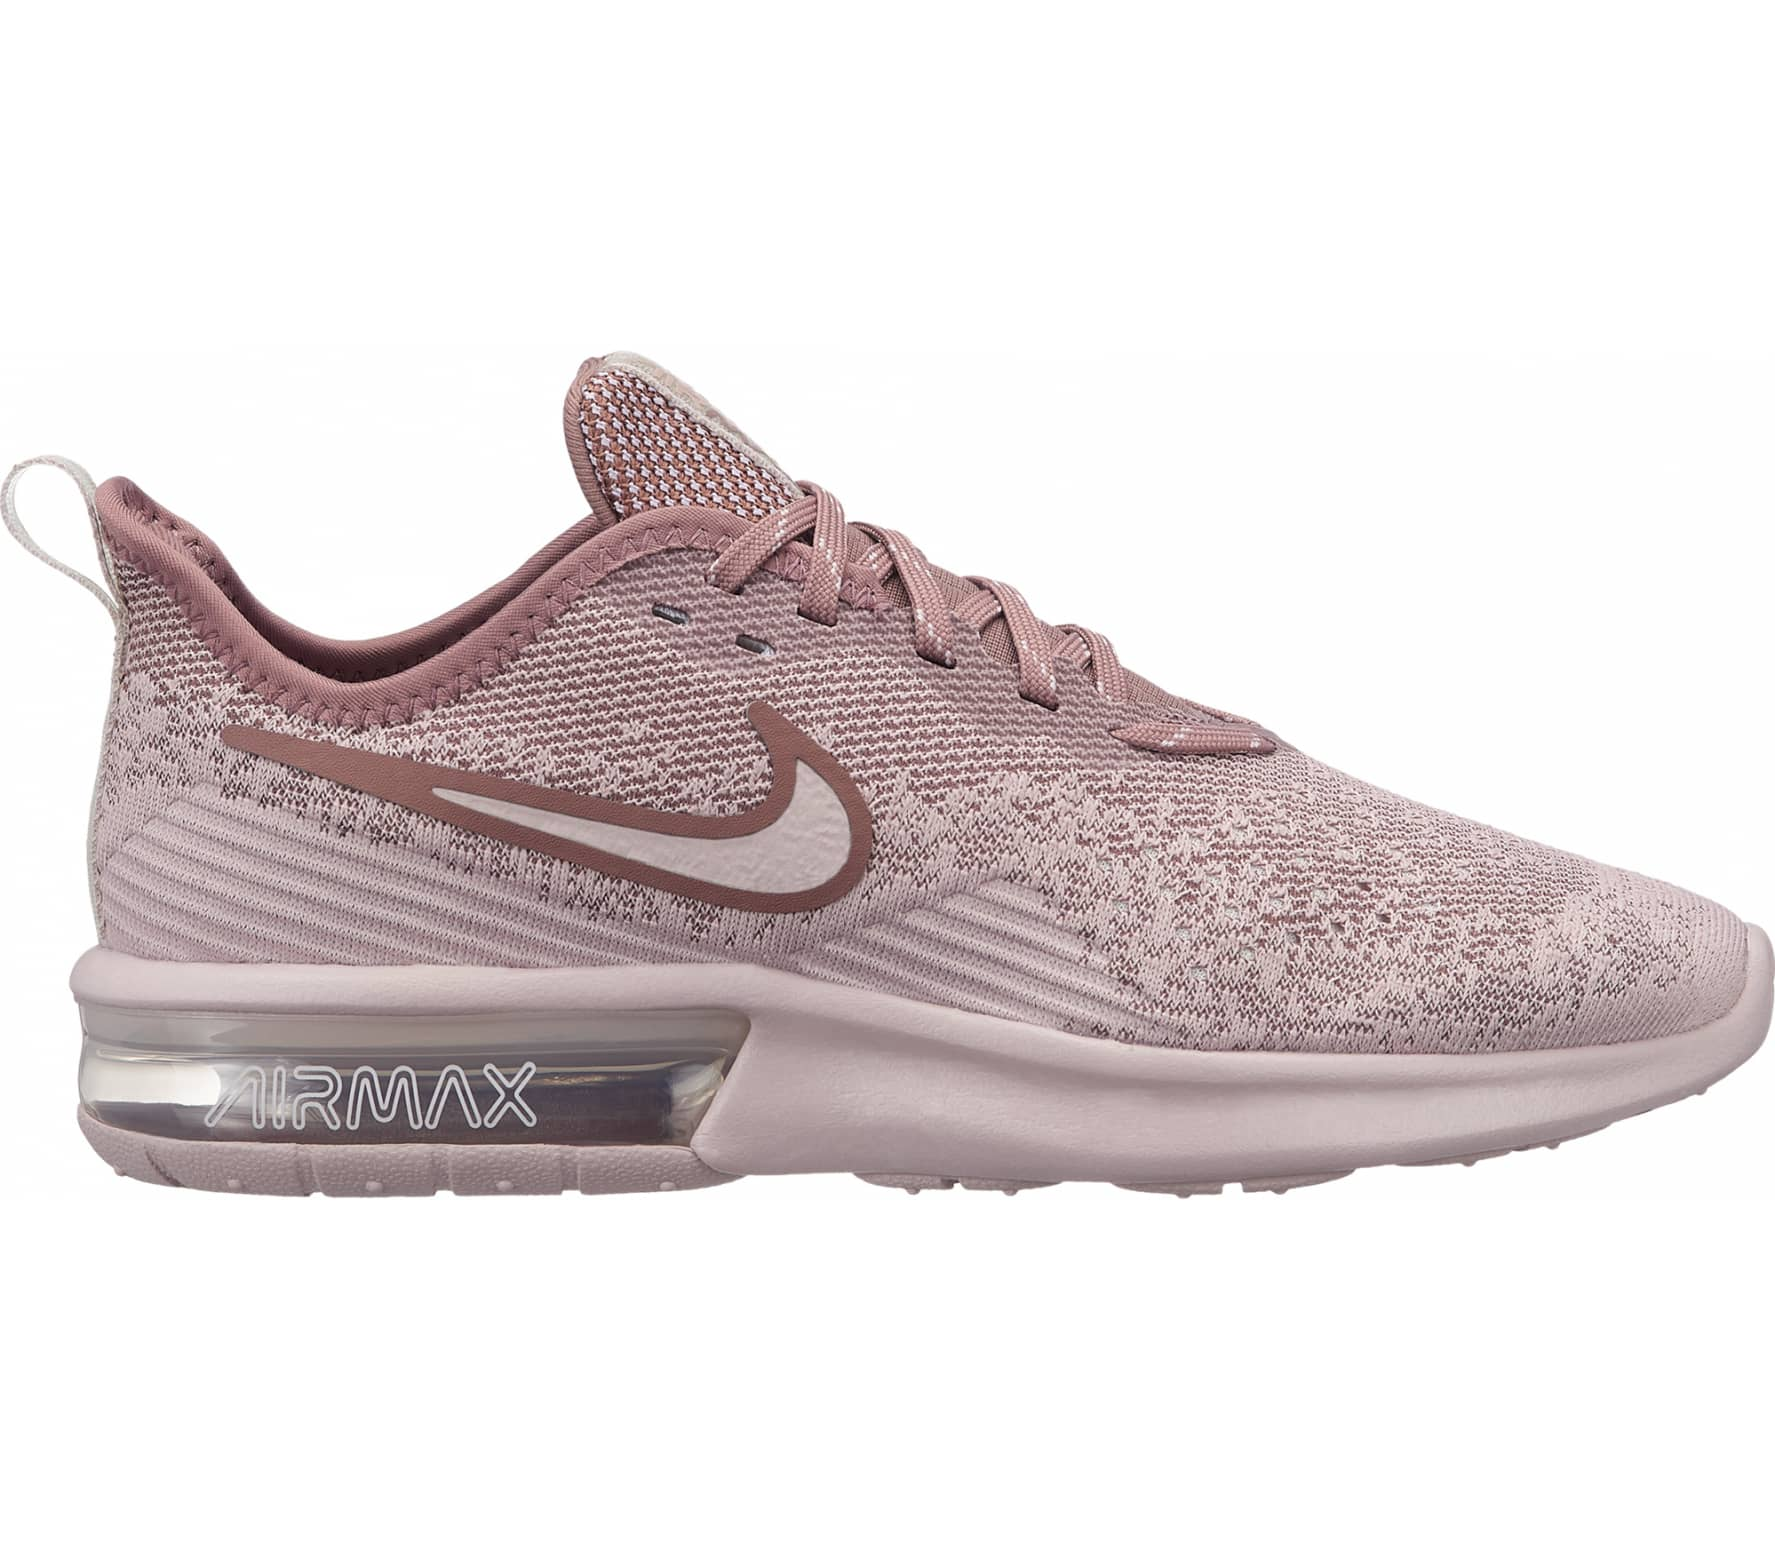 reputable site bd561 d7042 Nike - Air Max Sequent 4 Damen Laufschuh (pink)